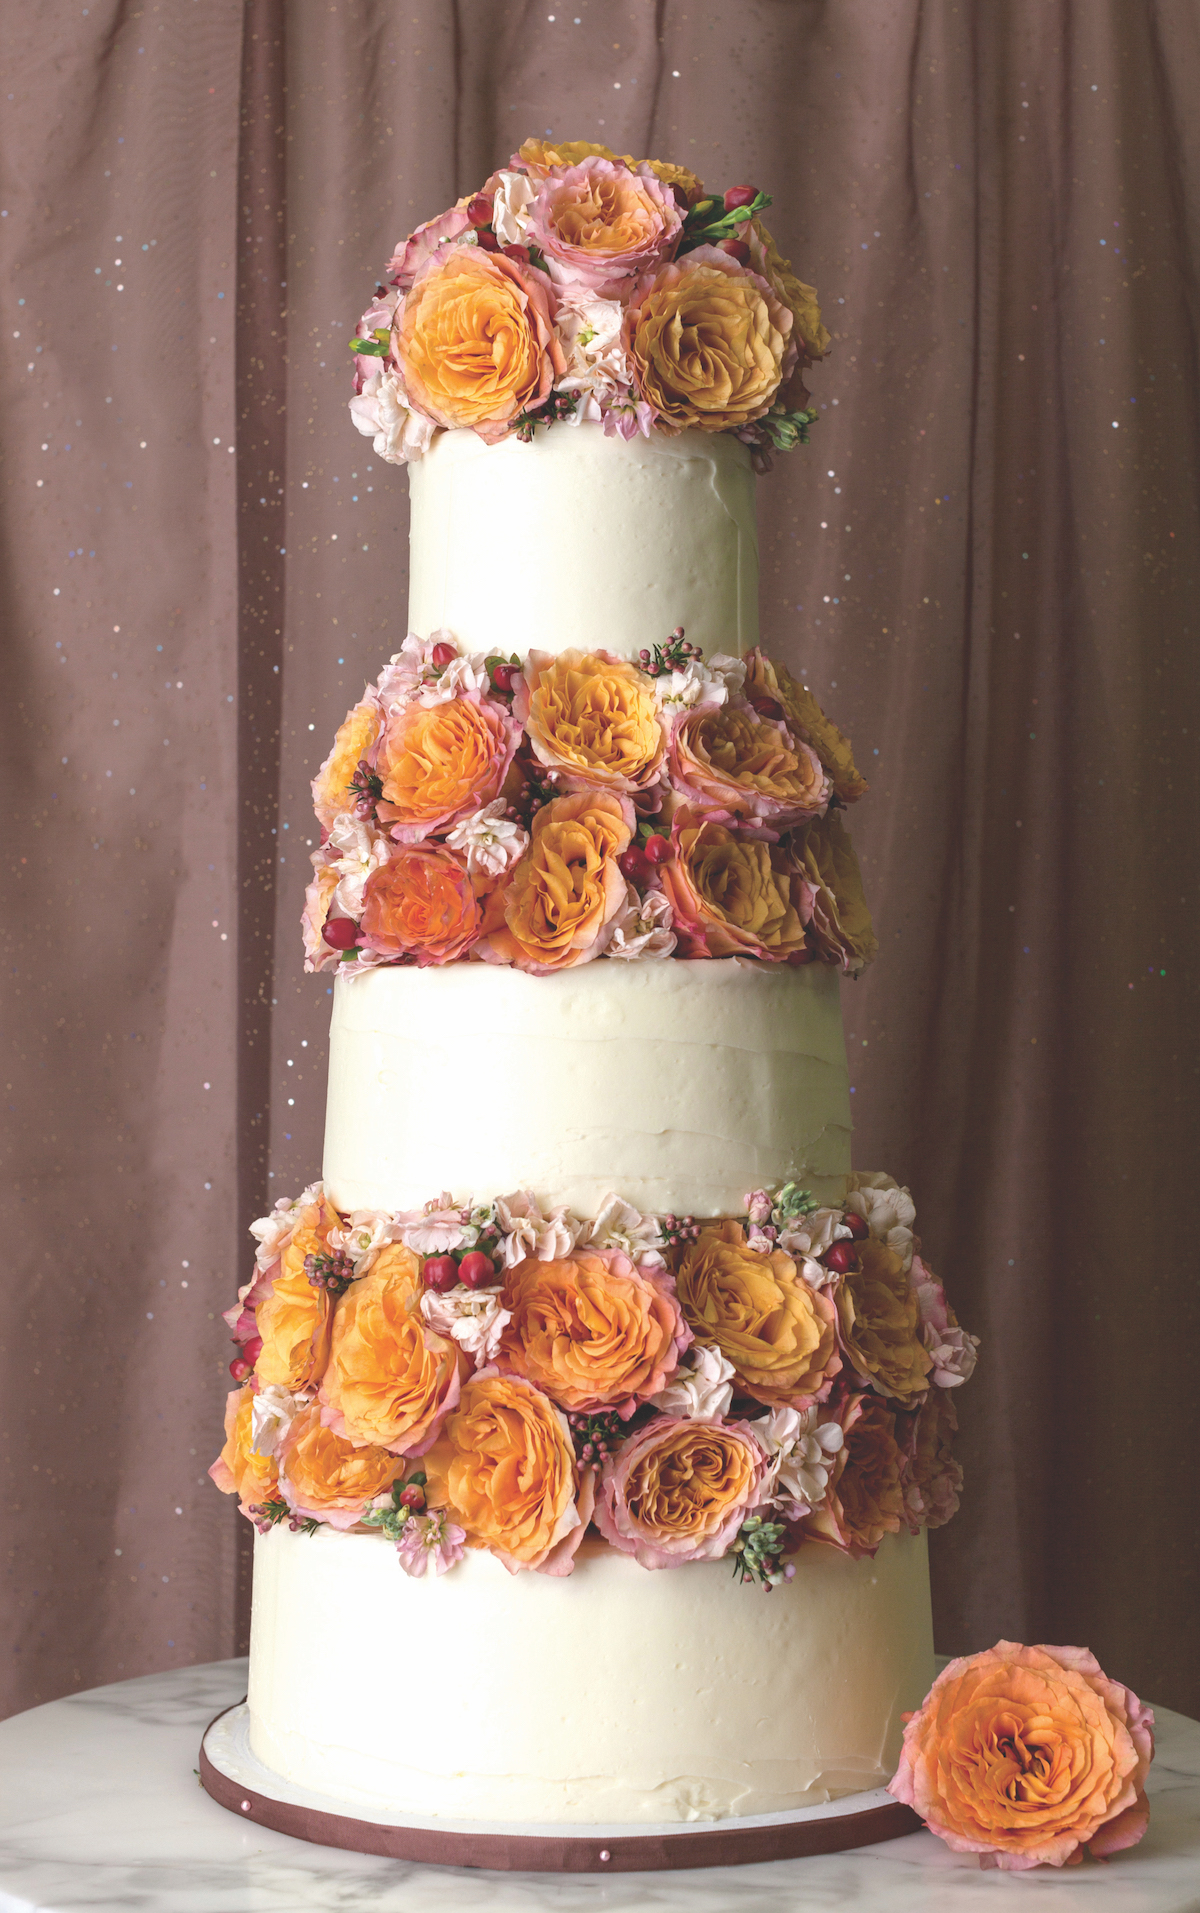 The prettiest wedding cakes from Magnolia Bakery…style inspiration